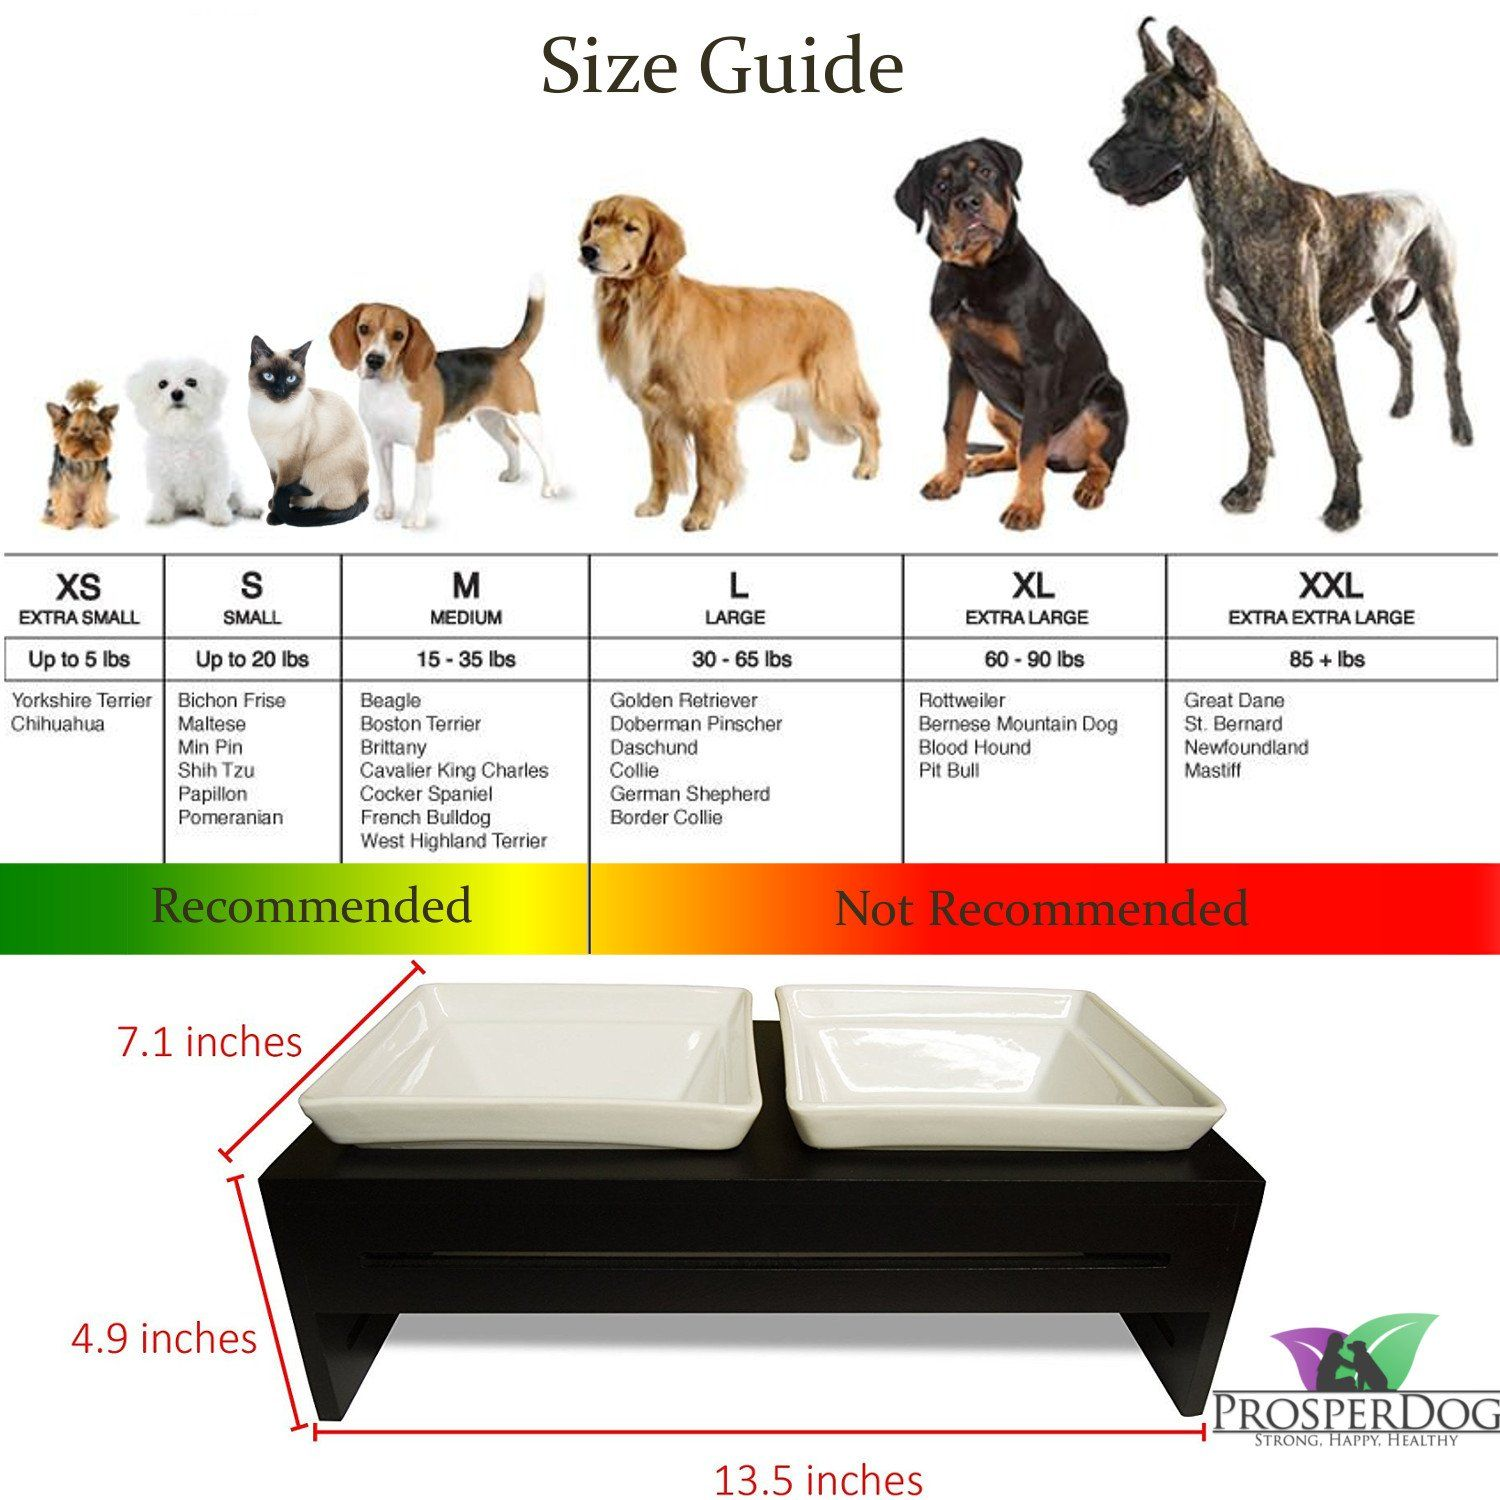 Prosperdog Pet Products The Dog Feeder And Cat Raised Pet Bowls For Small To Medium Dogs And Cats Puppy Feeding Sta Dog Feeder Cat Feeding Saint Bernard Dog